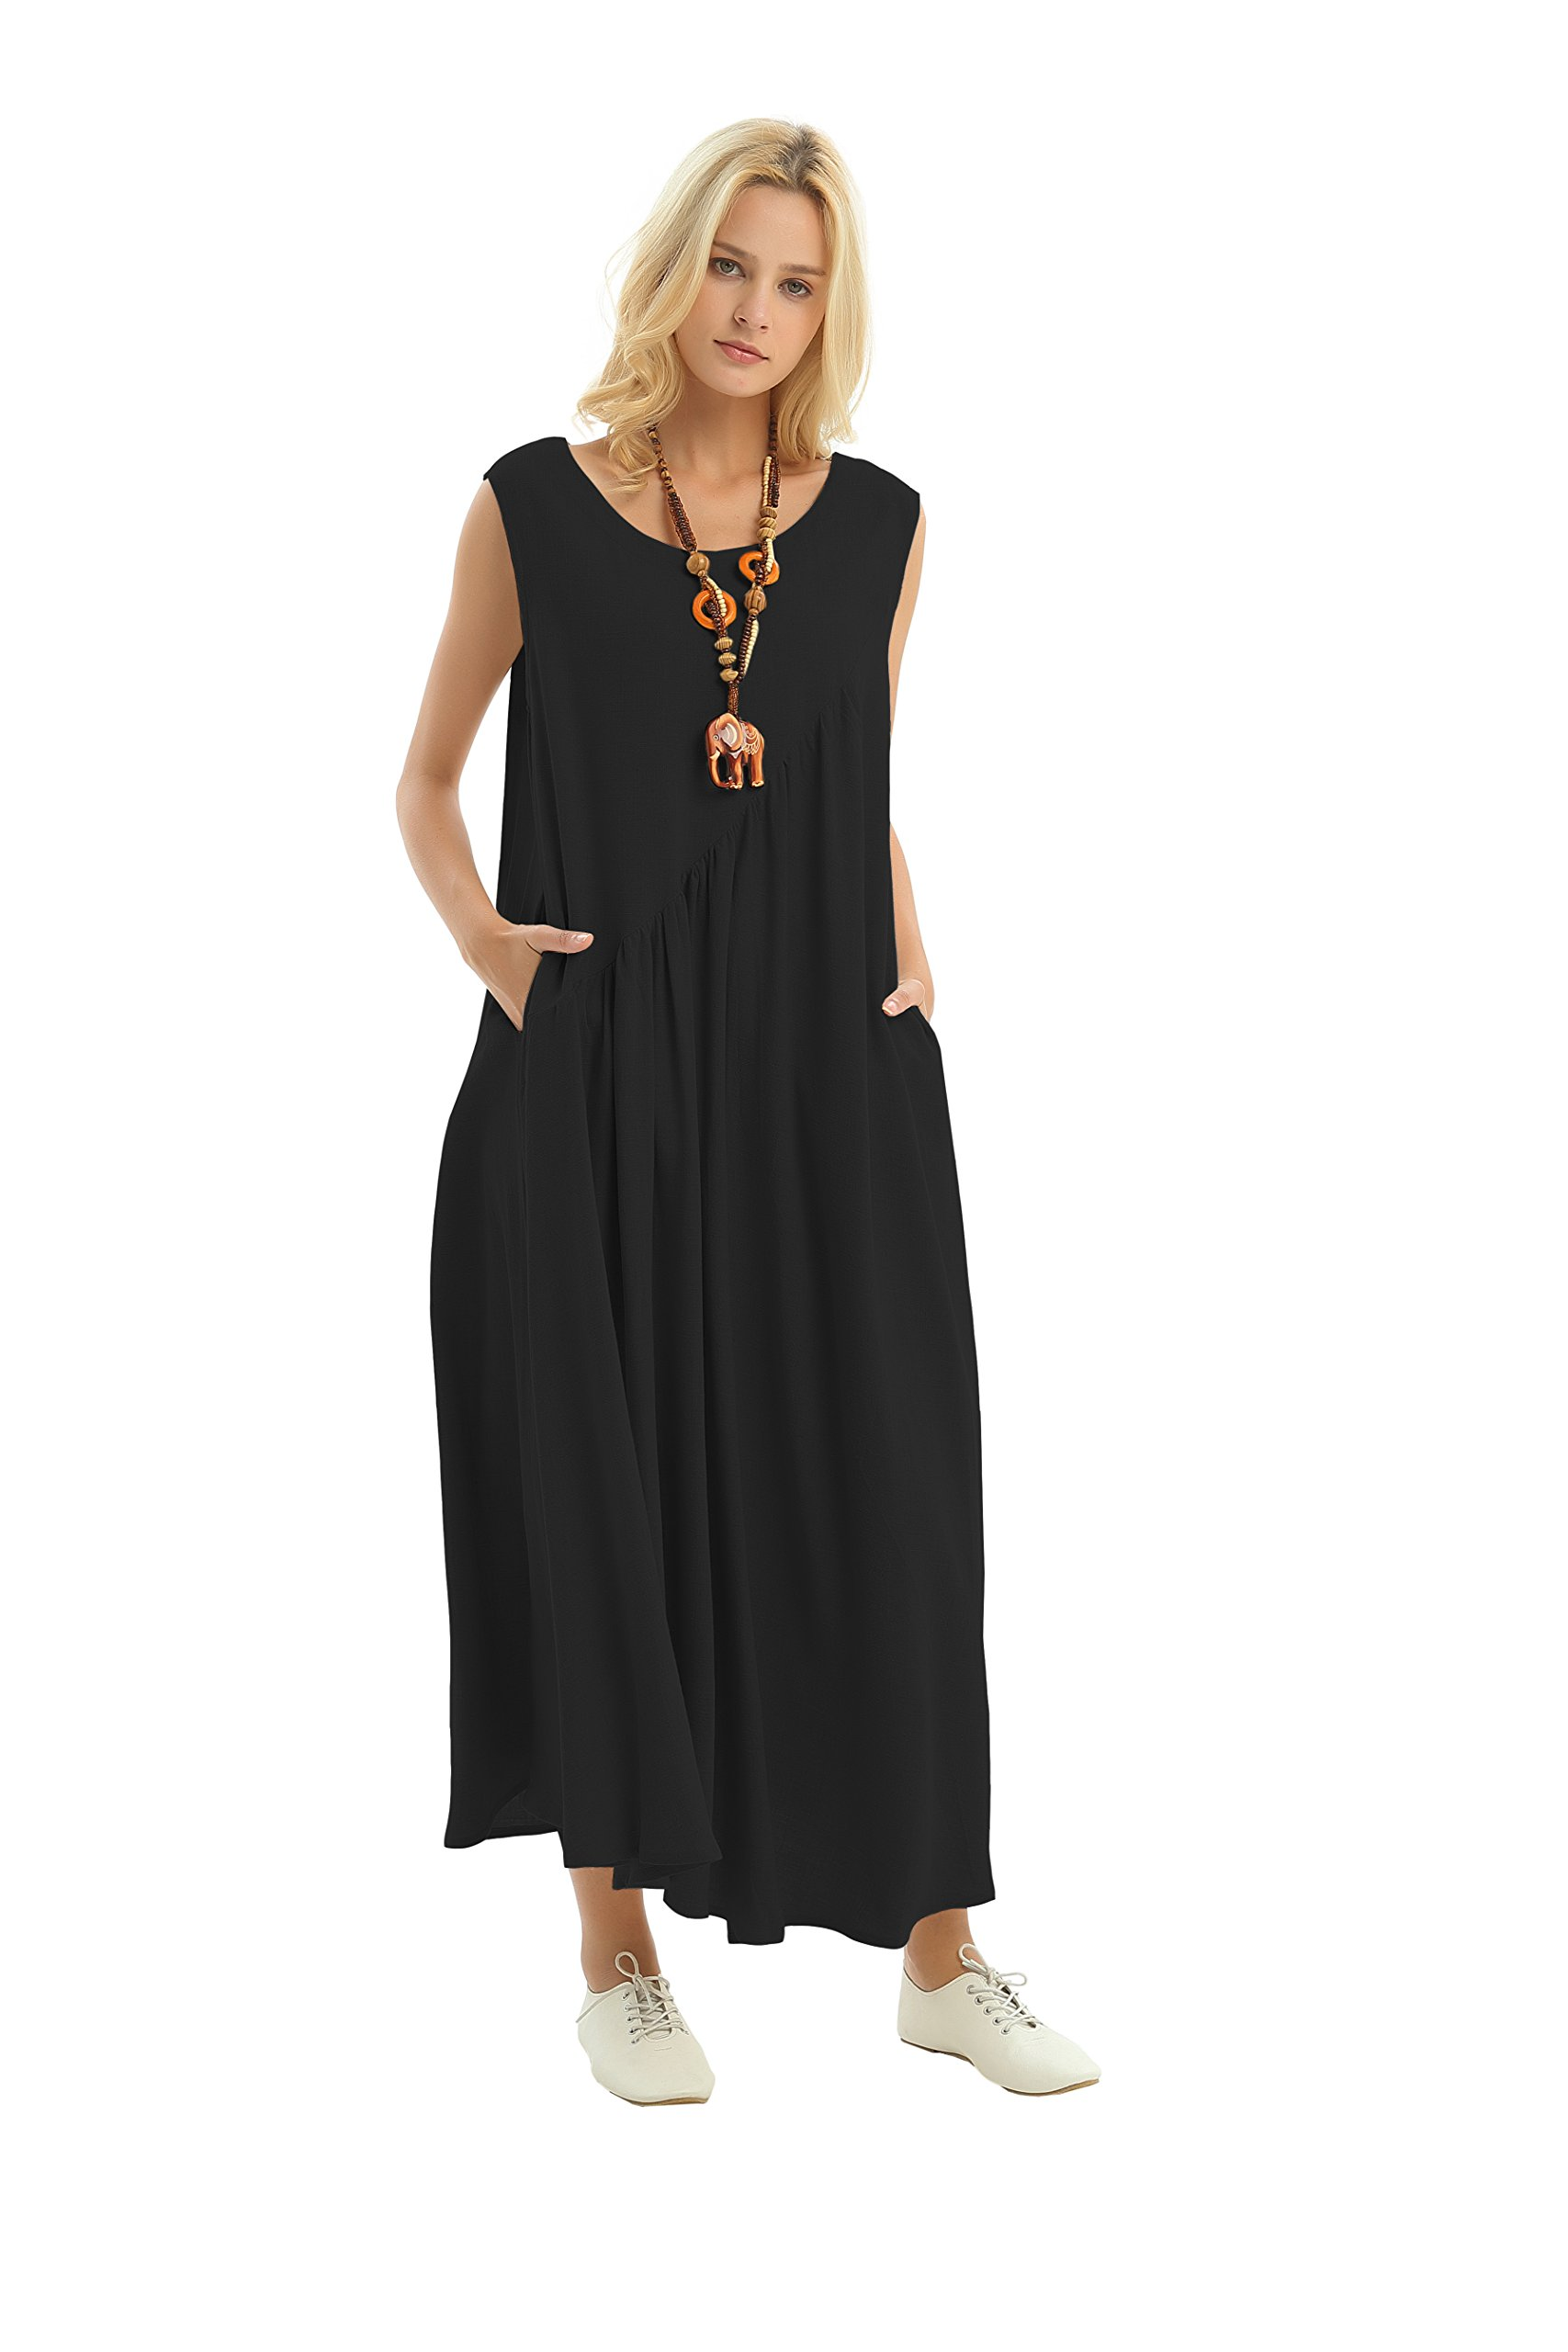 Anysize Side Seam Pockets Loose Cotton Summer Dress Plus Size Clothing Lithesome Version 0.7 lbs Y17